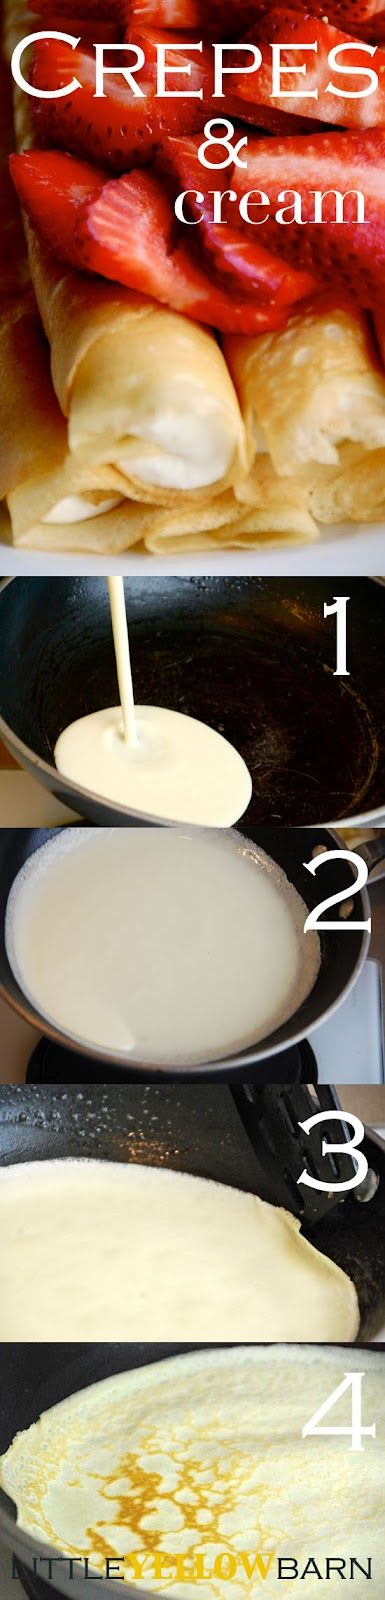 Darn good crepe recipe; crepes & cream